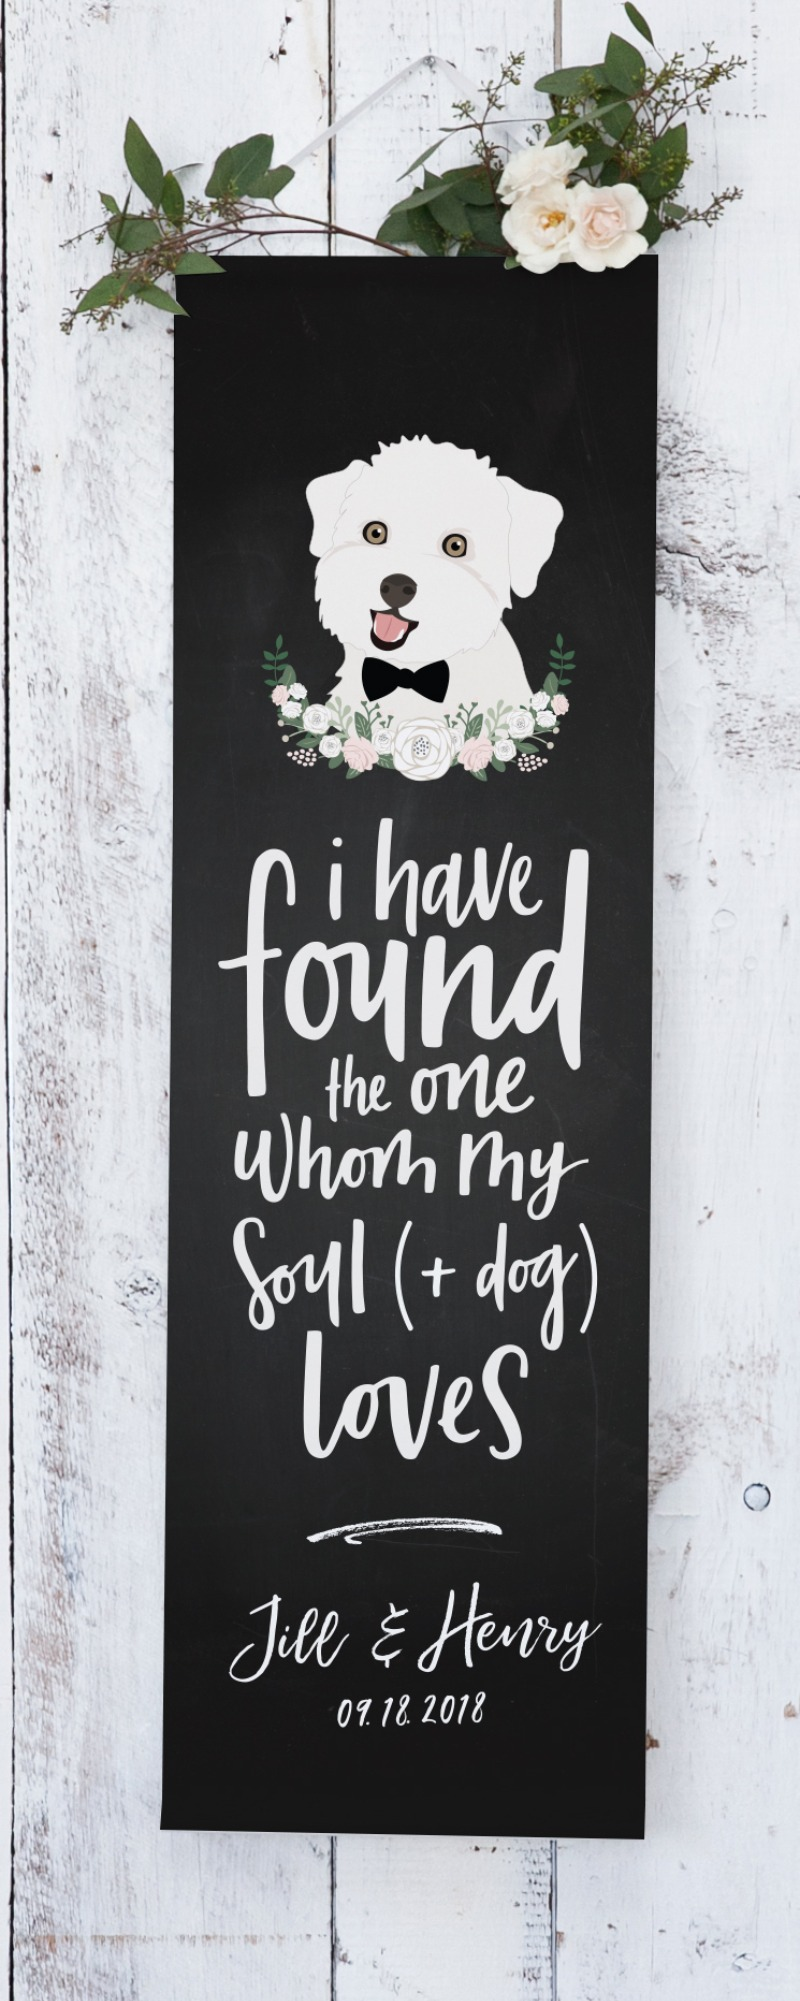 Dog moms, rejoice. Represent your furry #bae with this fun wedding banner.